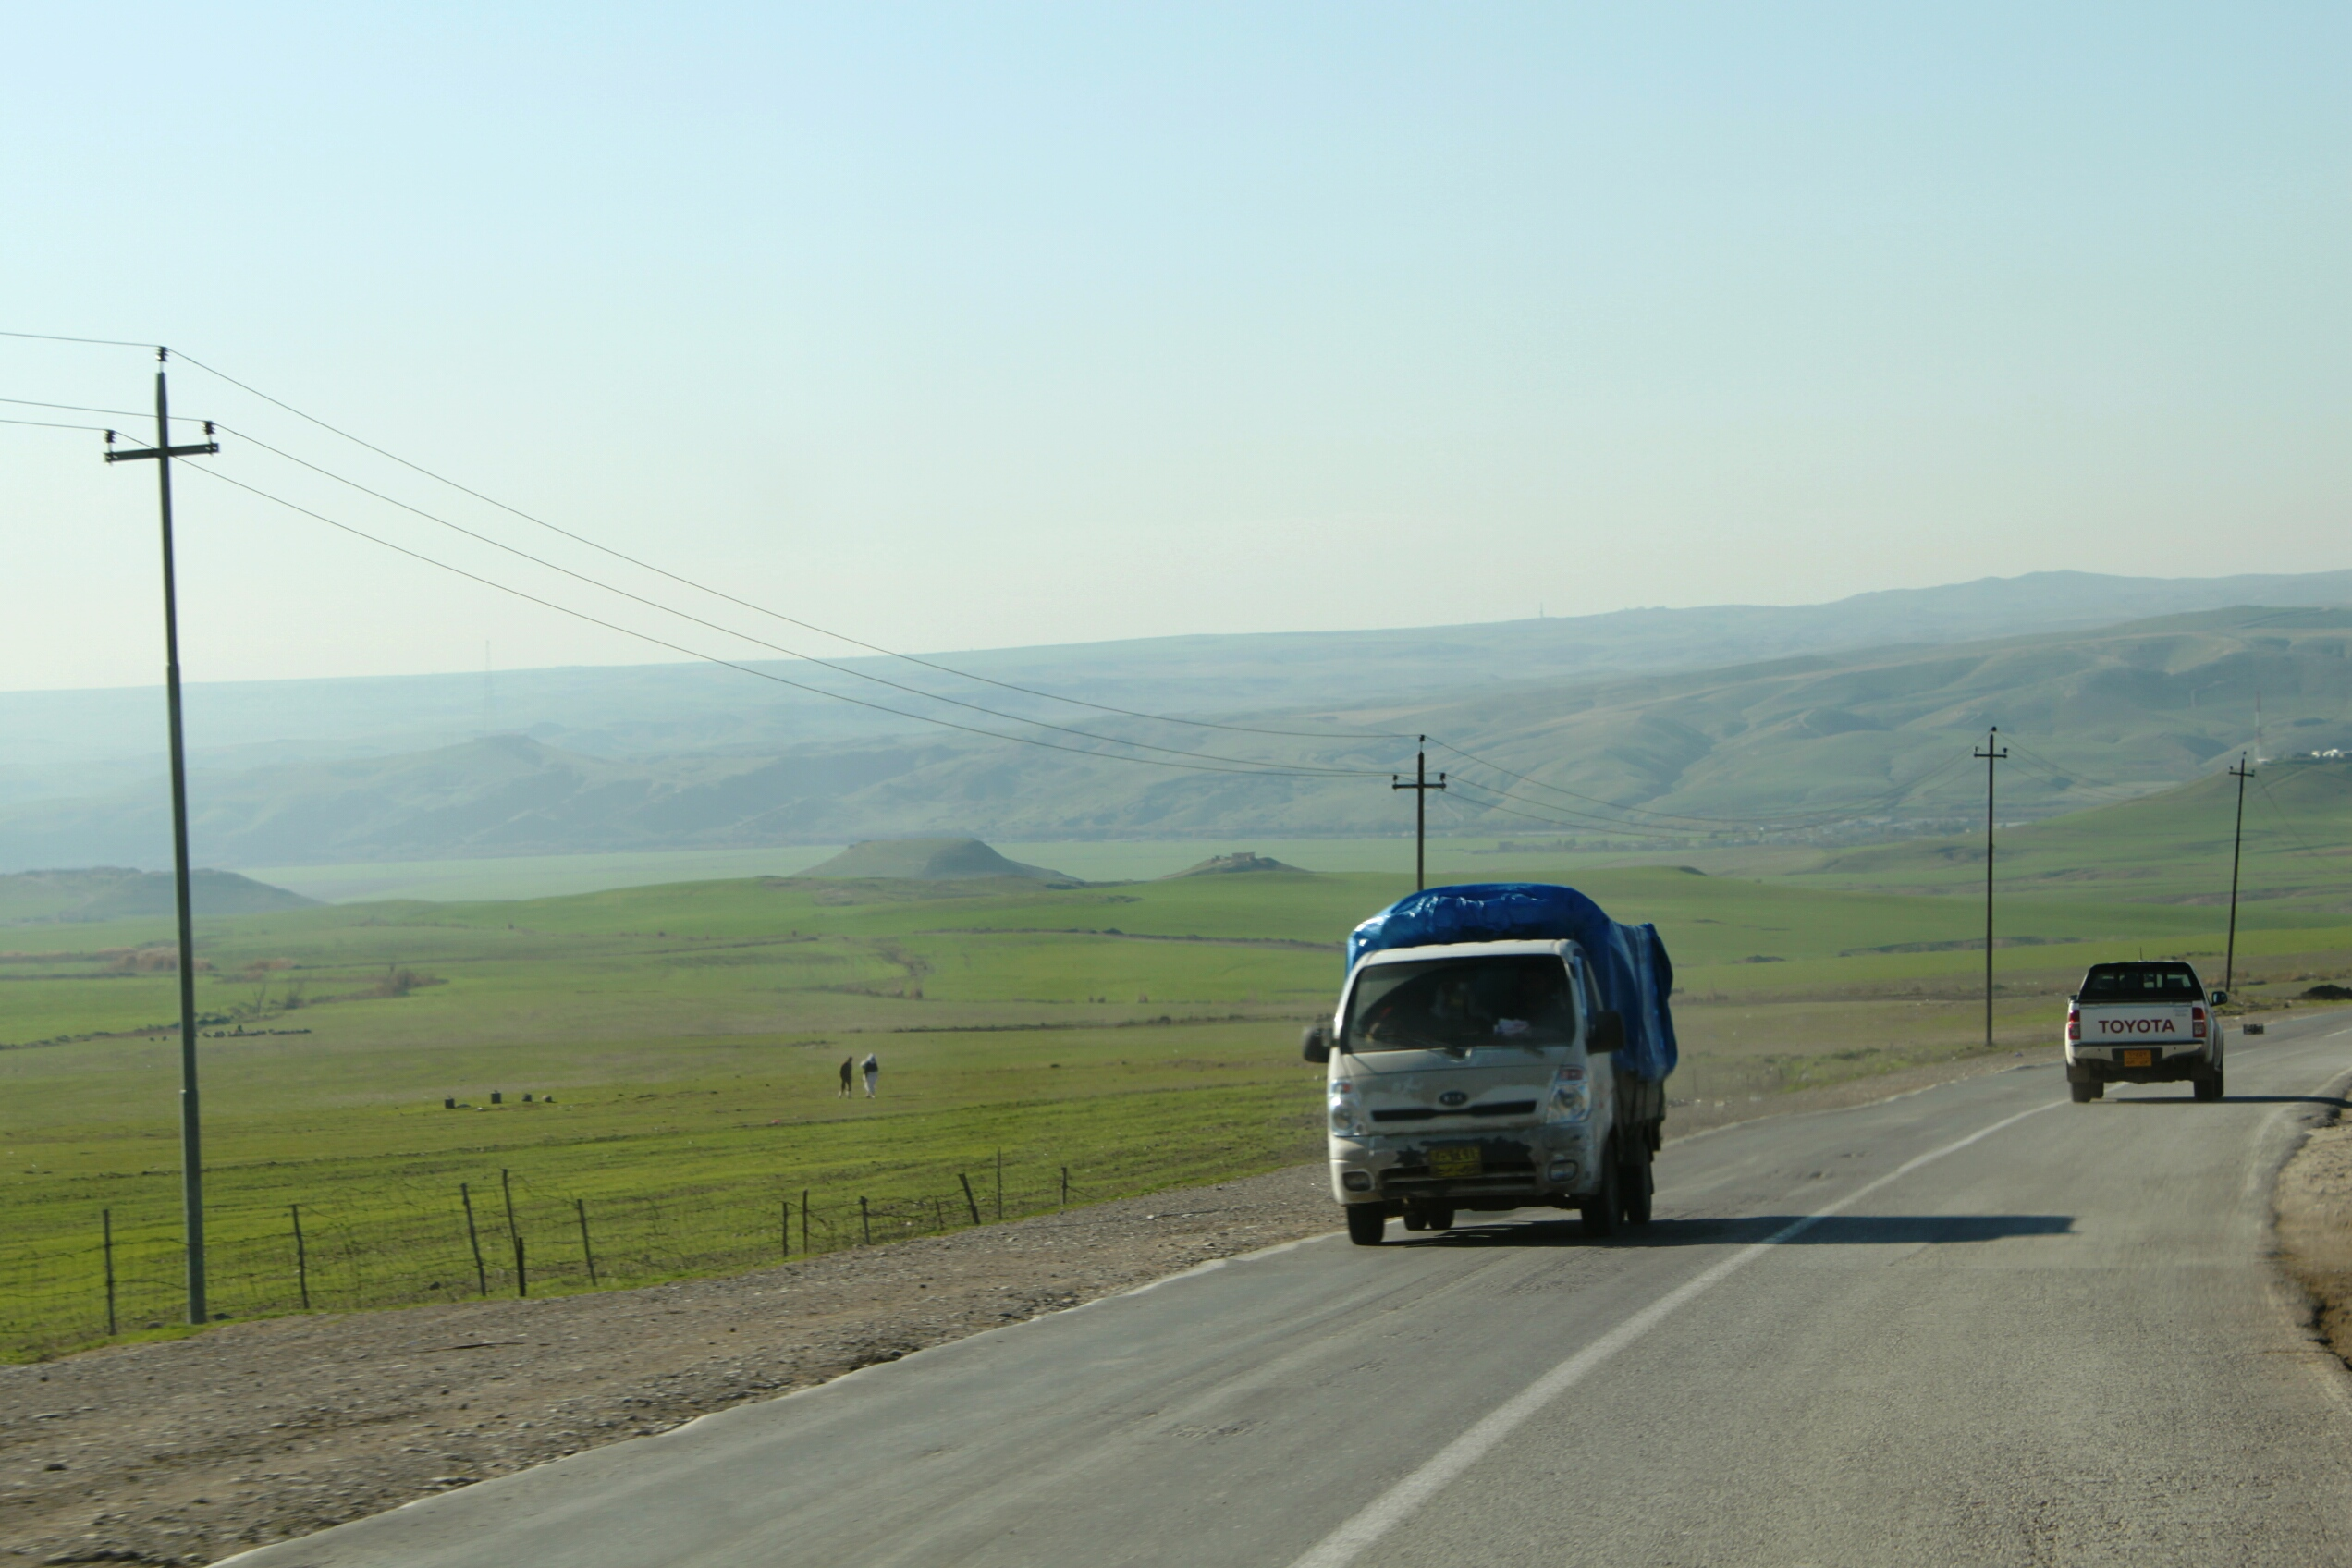 Driving along the beautiful Syrian border on the Iraq side.